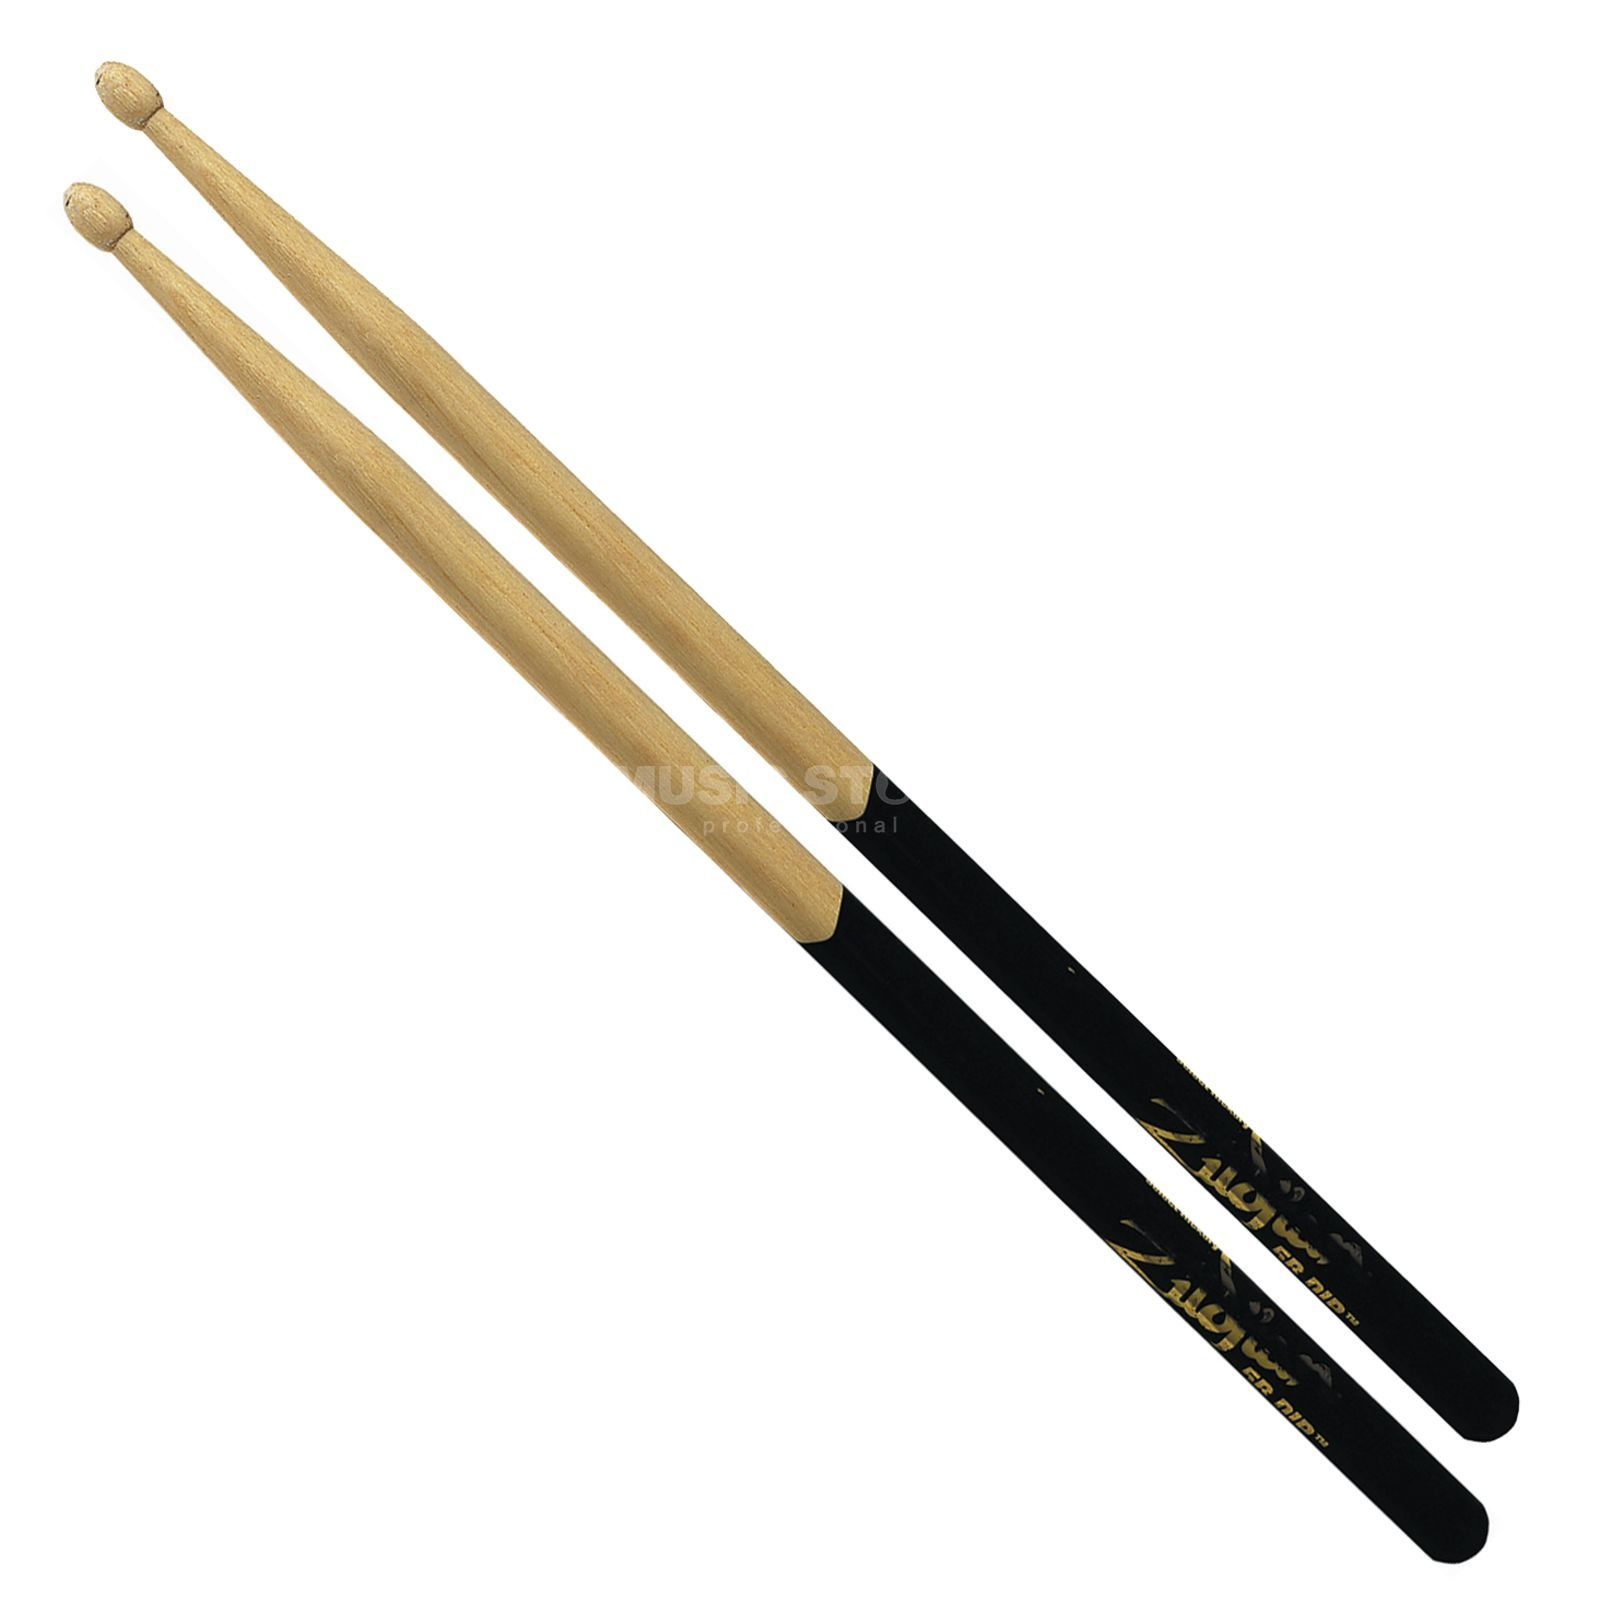 Zildjian 7A Sticks Black-DIP, Wood Tip Hickory, Natural Finish Produktbild